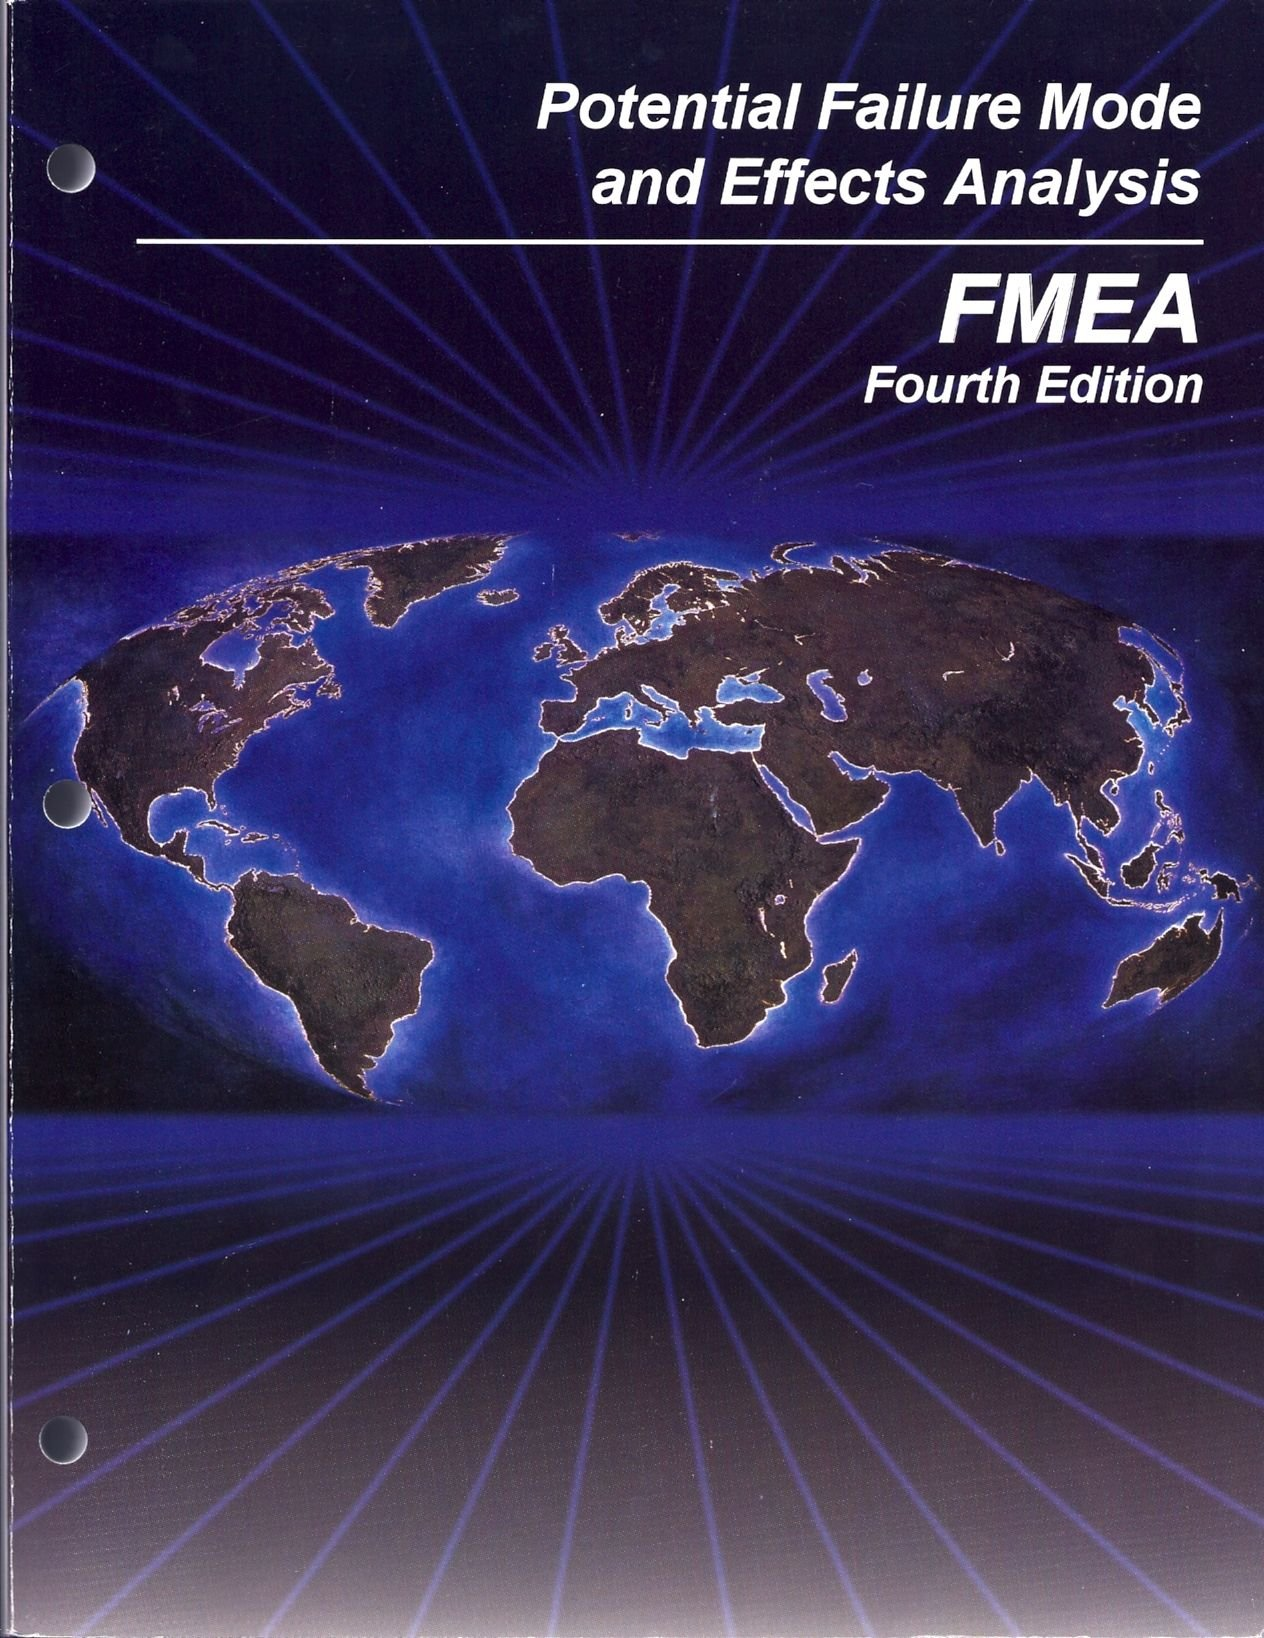 Aiag fmea manual 5th edition pdf